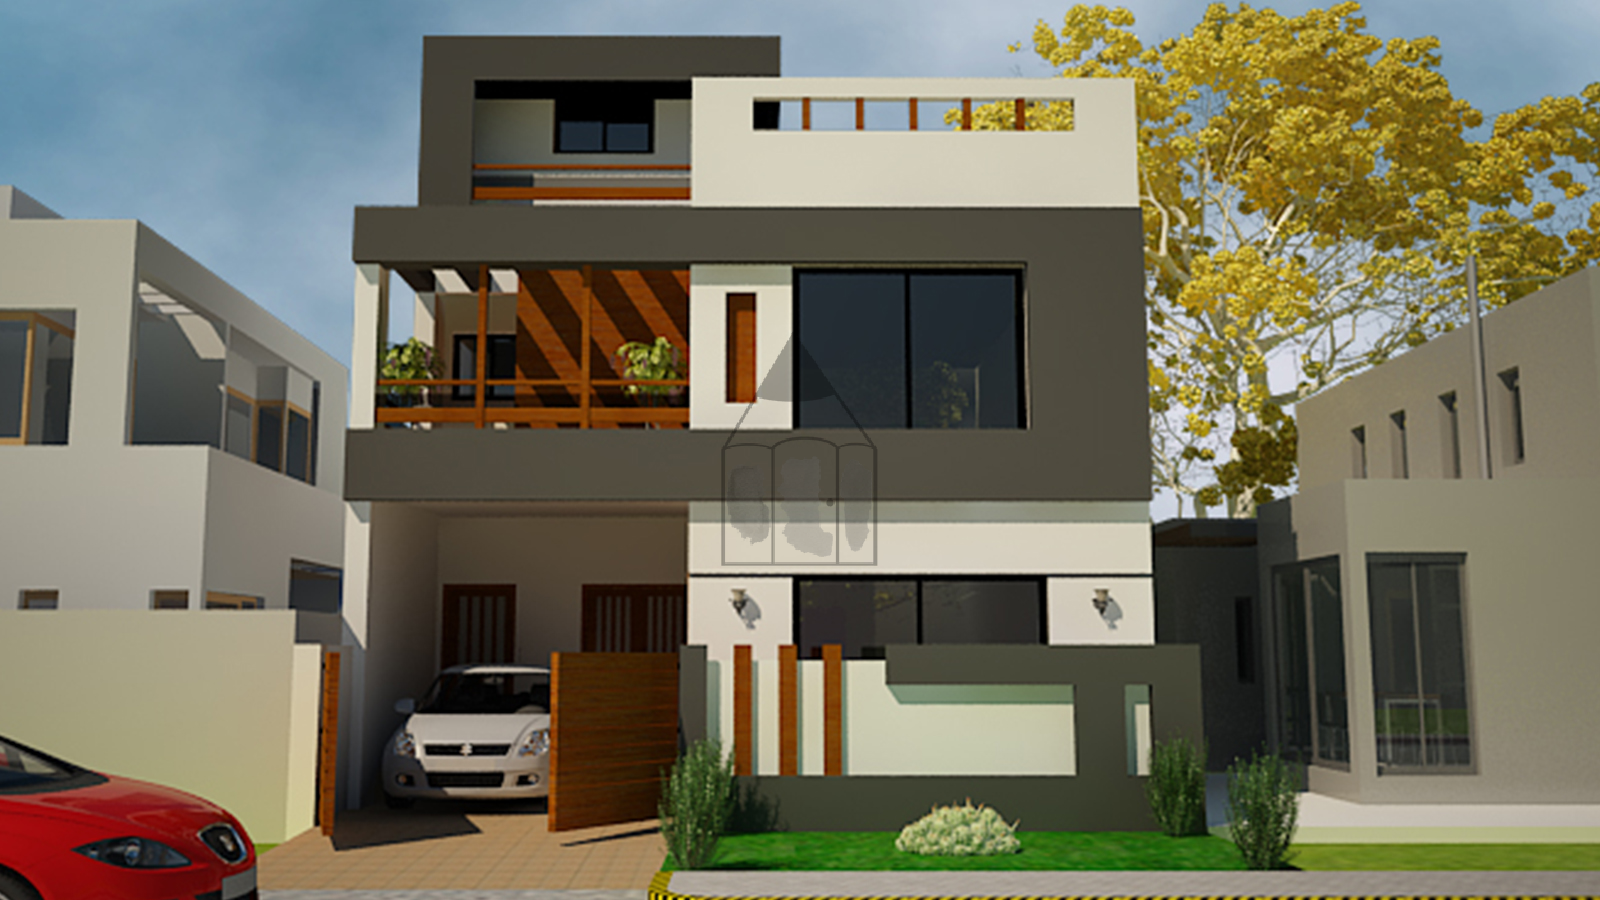 5 marla house front design this is a standard 5 marla house front design with the complete layout plan as it has 3 bedrooms with 3 attached bathrooms and